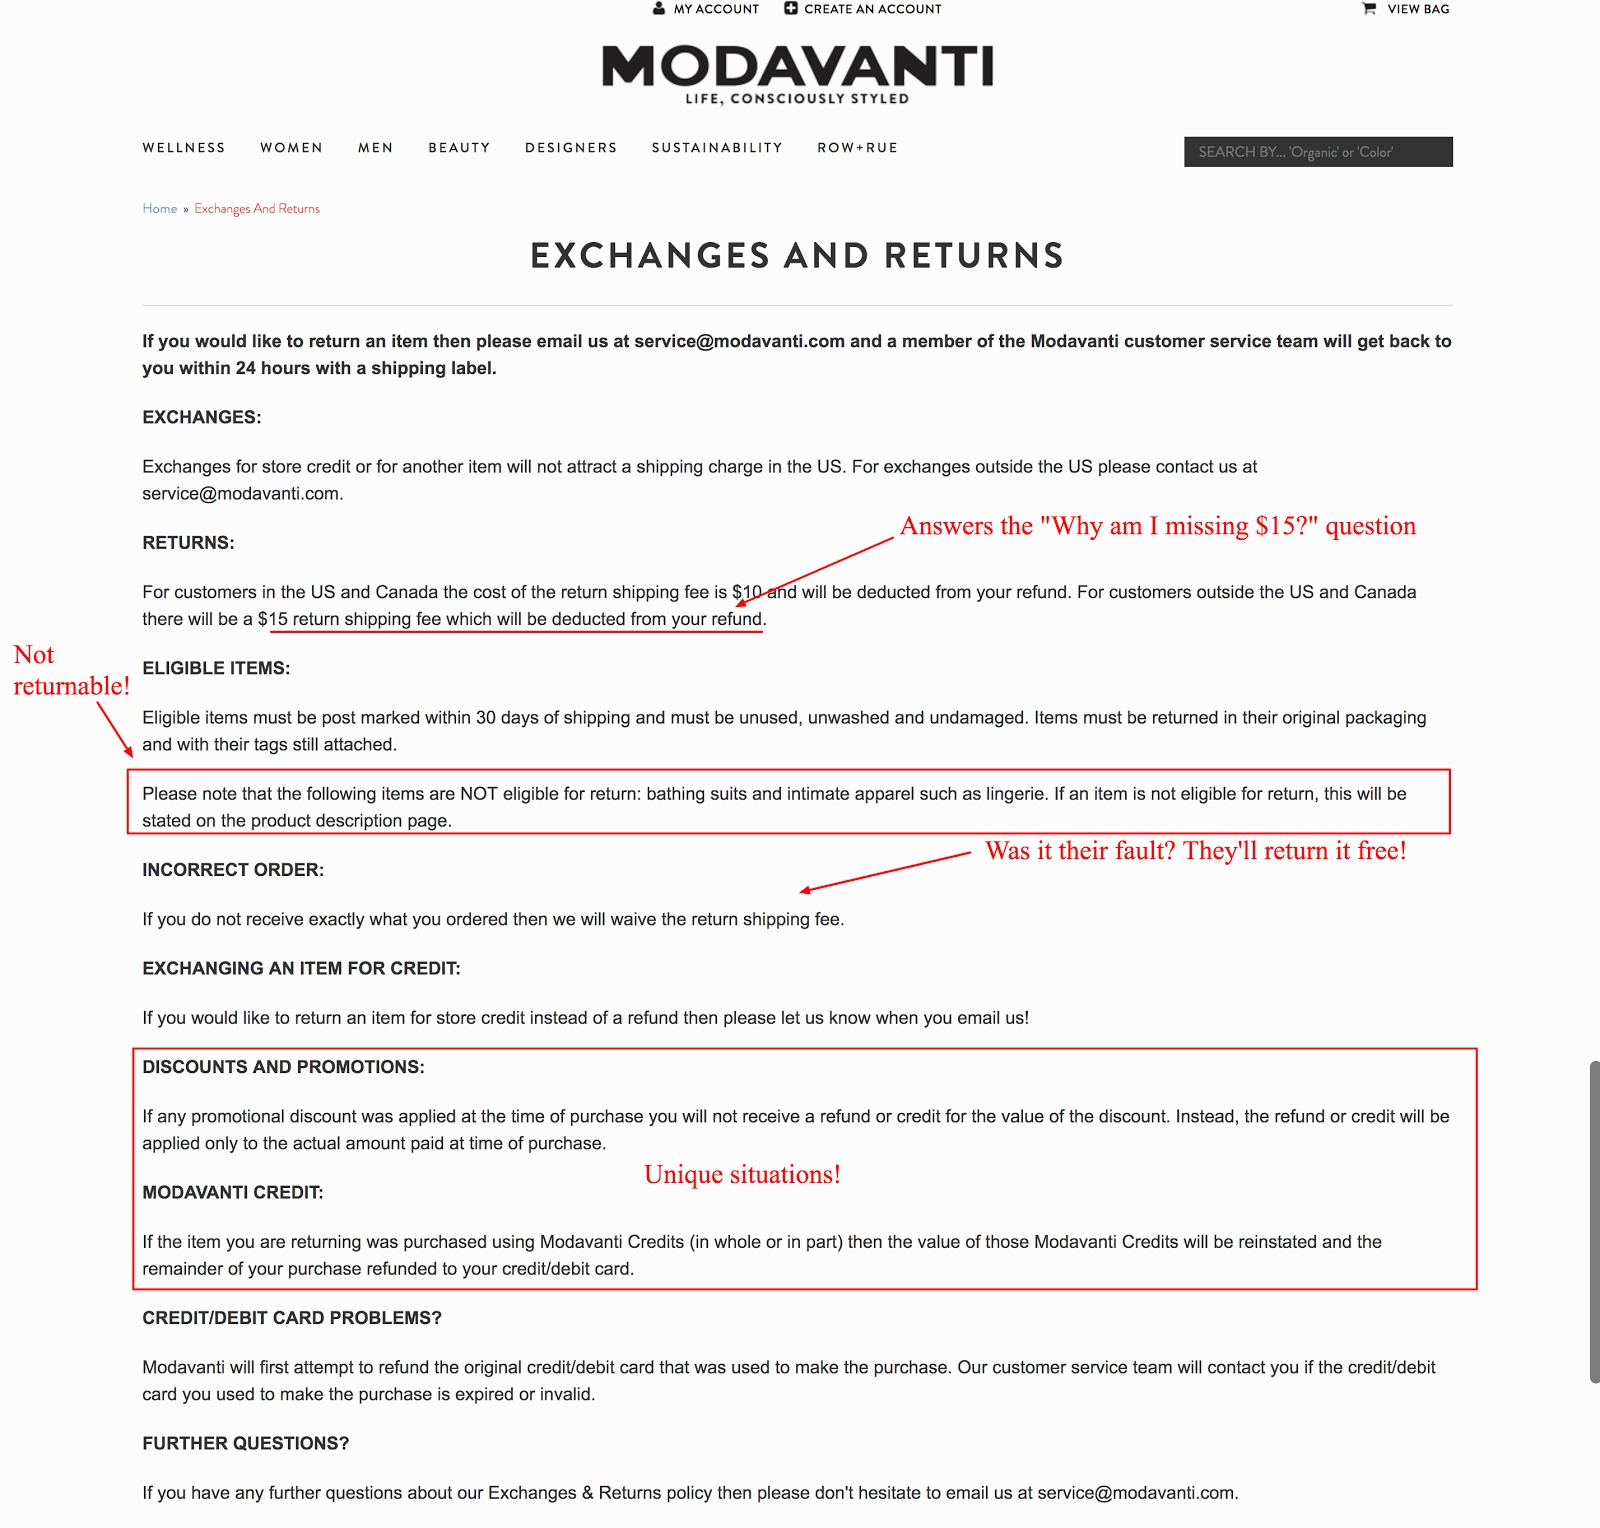 modavanti does a great job fully explaining their return policy including unique situations what is and is not returnable and more check it out